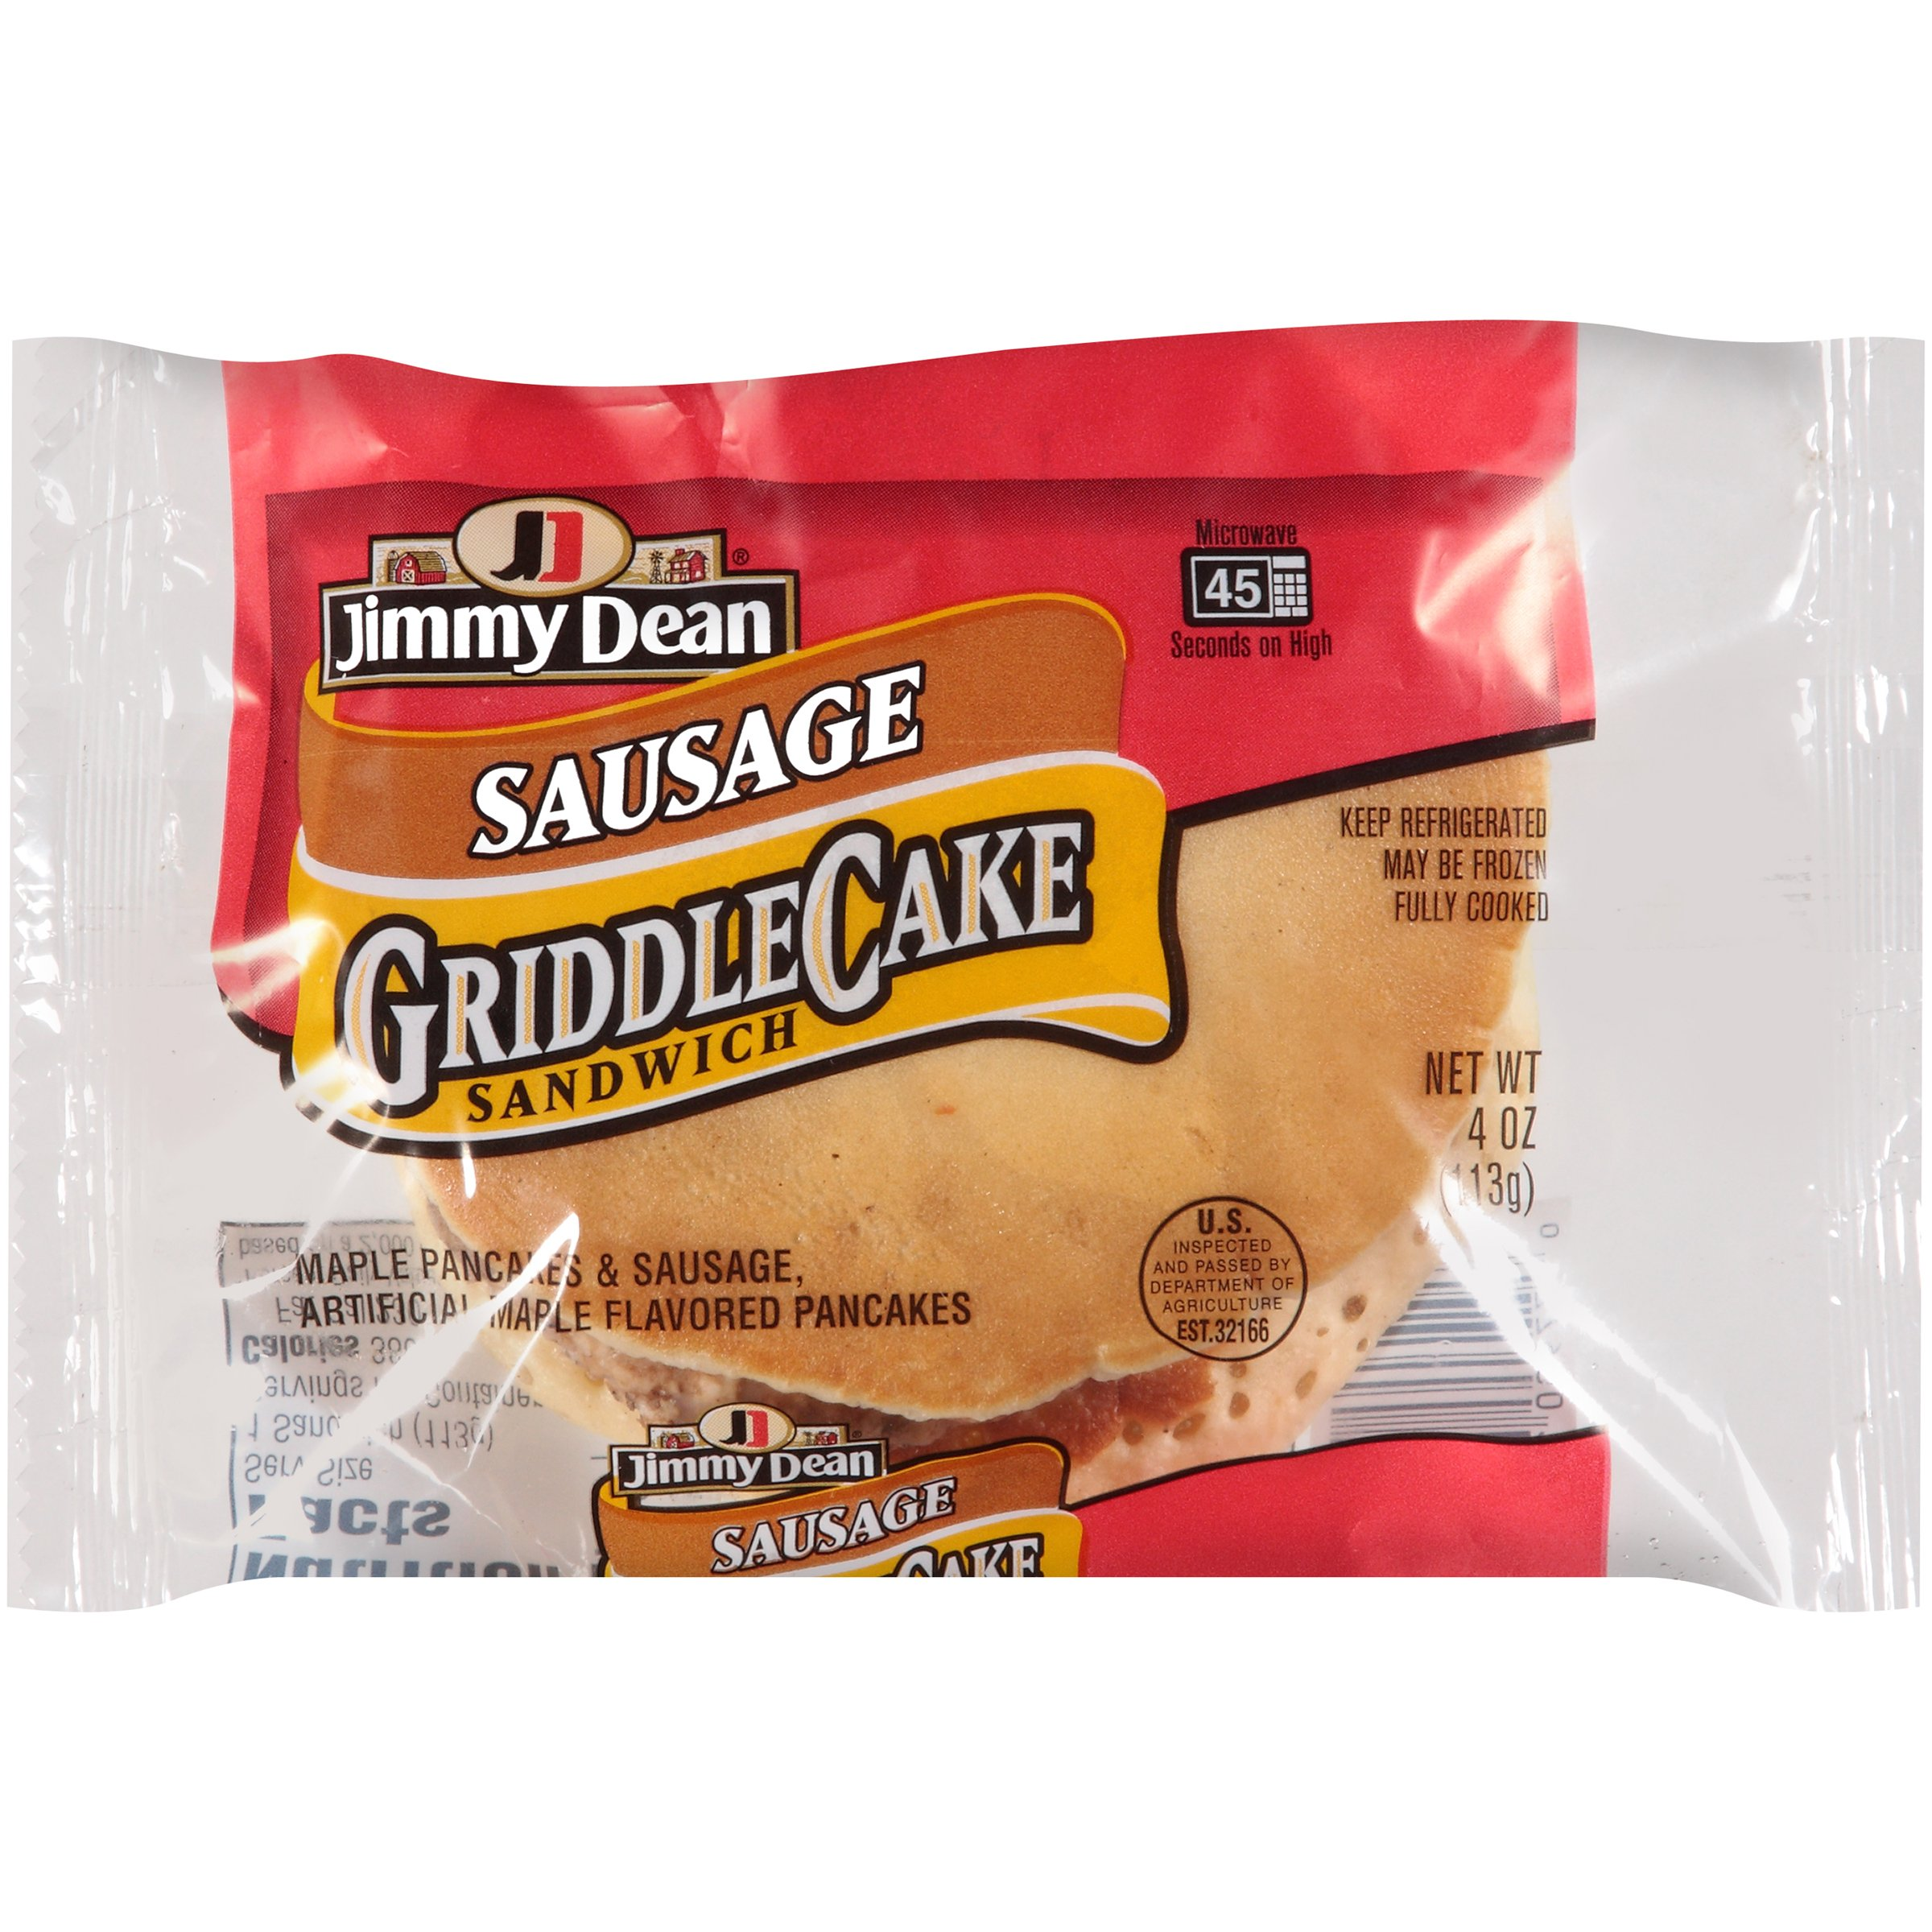 Jimmy Dean Sausage and Pancake Sandwich, 4 oz., 24 per case